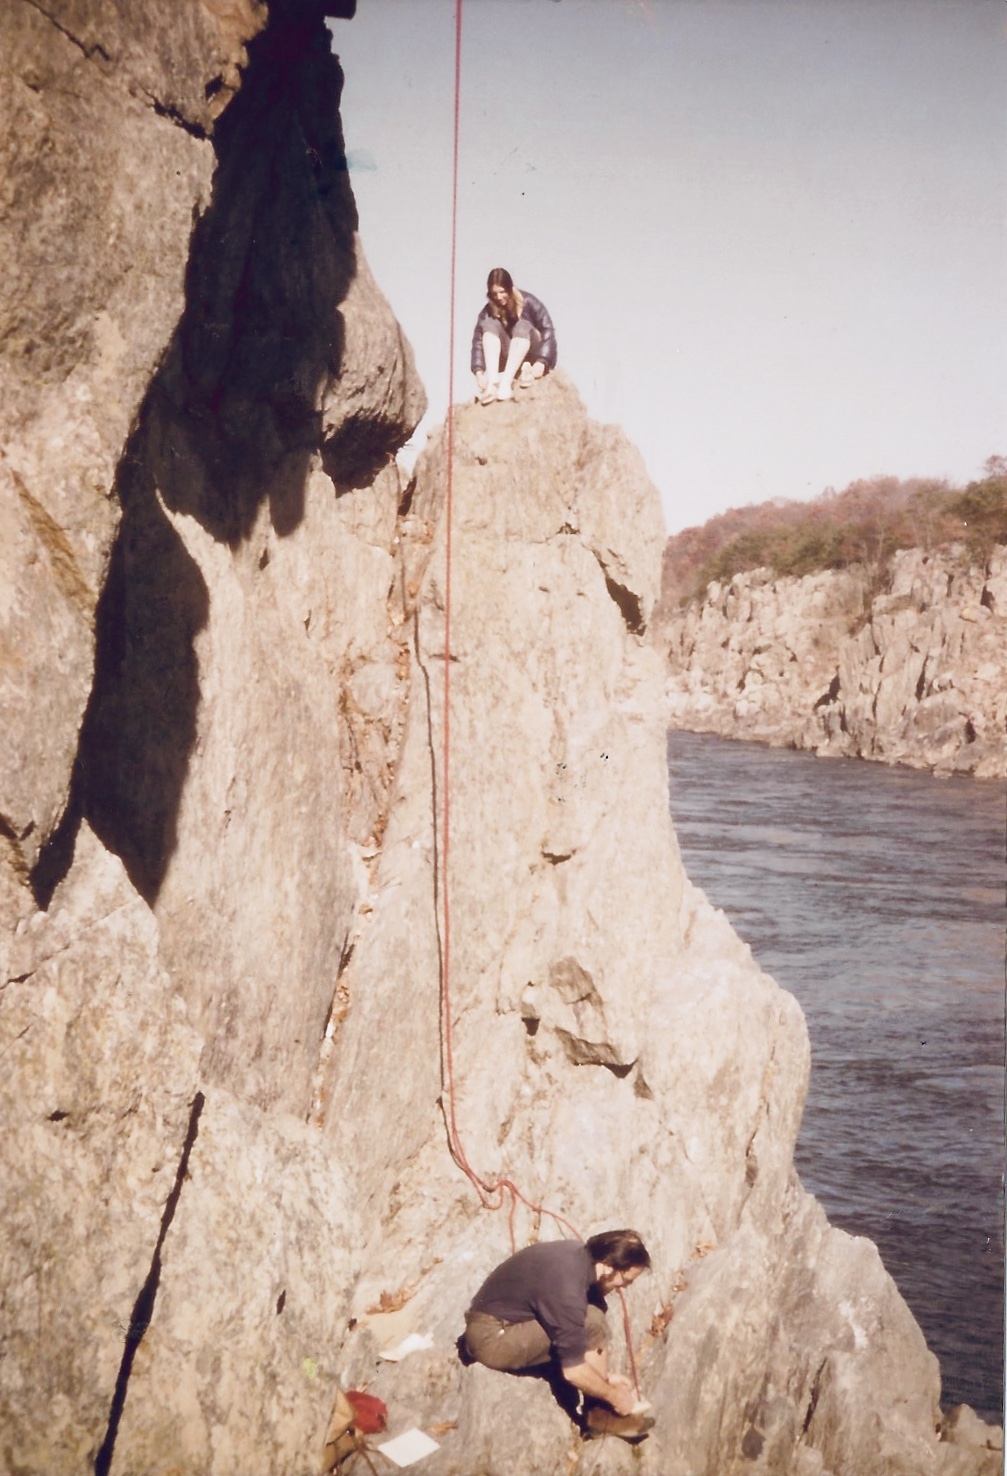 That's me, perched on that rock during my outdoorsy climbing days. So risky. Would have been better off doing body shots and playing beer pong.